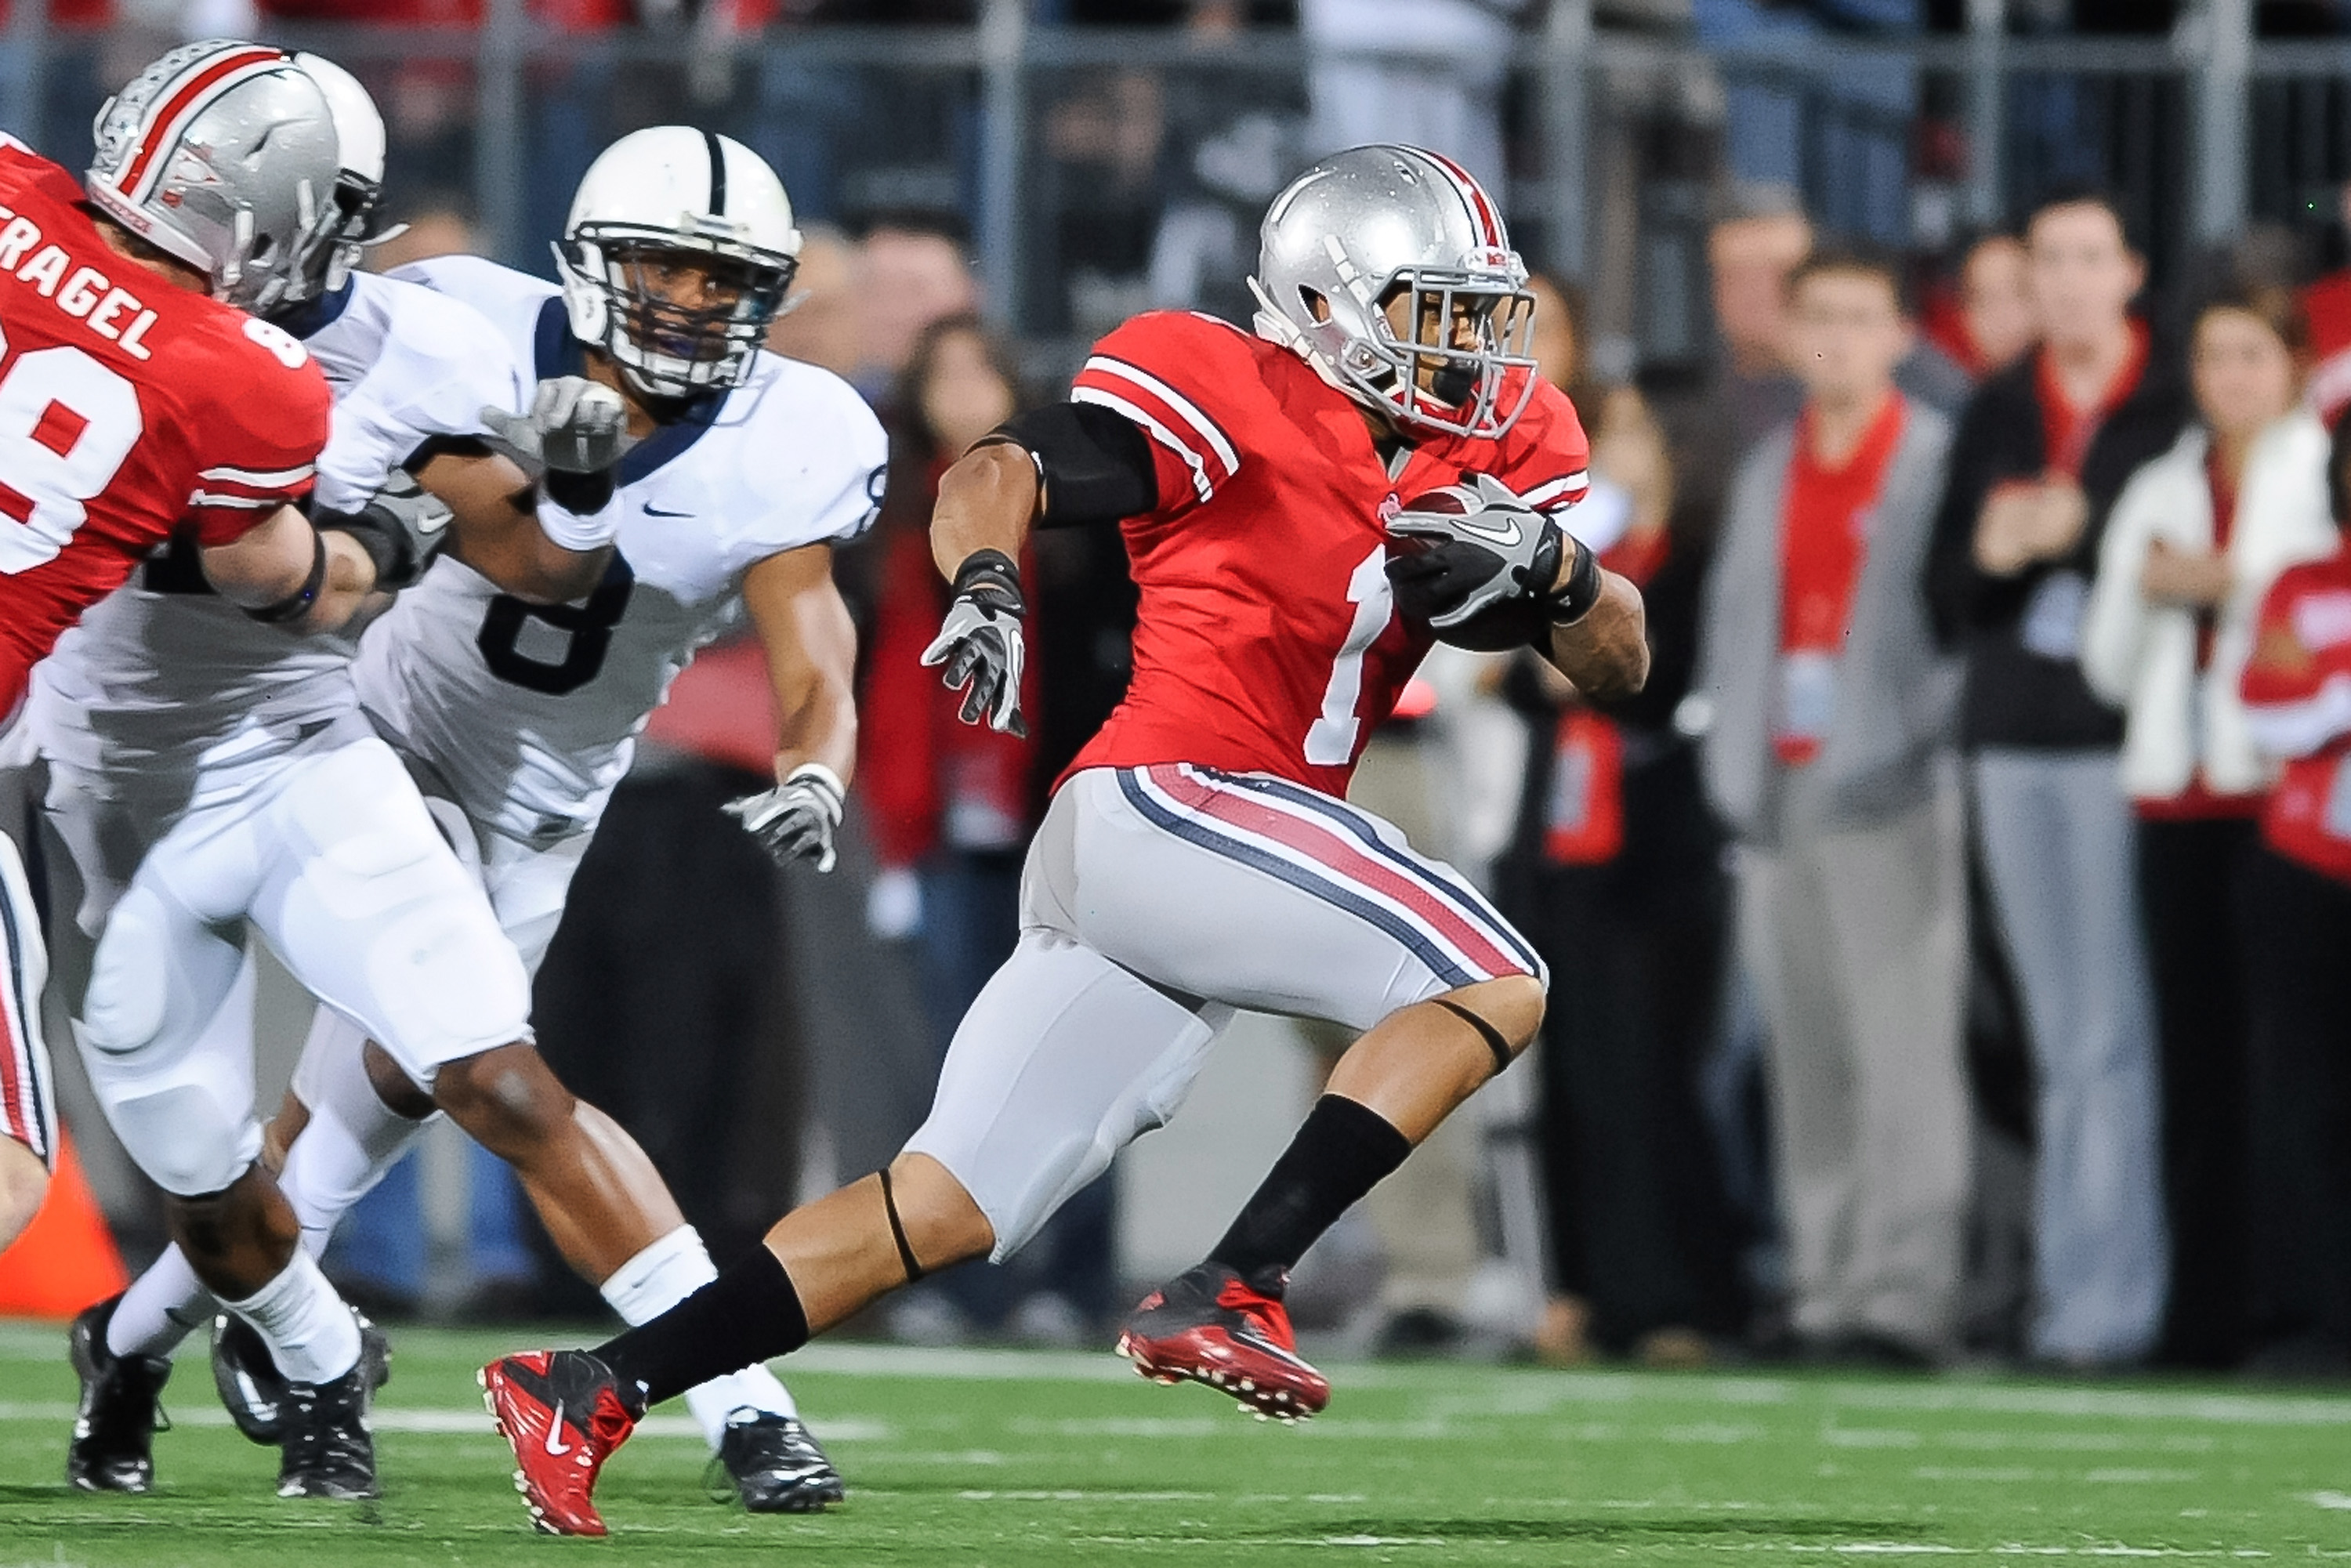 COLUMBUS, OH - NOVEMBER 13:  Dan Herron #1 of the Ohio State Buckeyes runs with the ball against the Penn State Nittany Lions at Ohio Stadium on November 13, 2010 in Columbus, Ohio.  (Photo by Jamie Sabau/Getty Images)